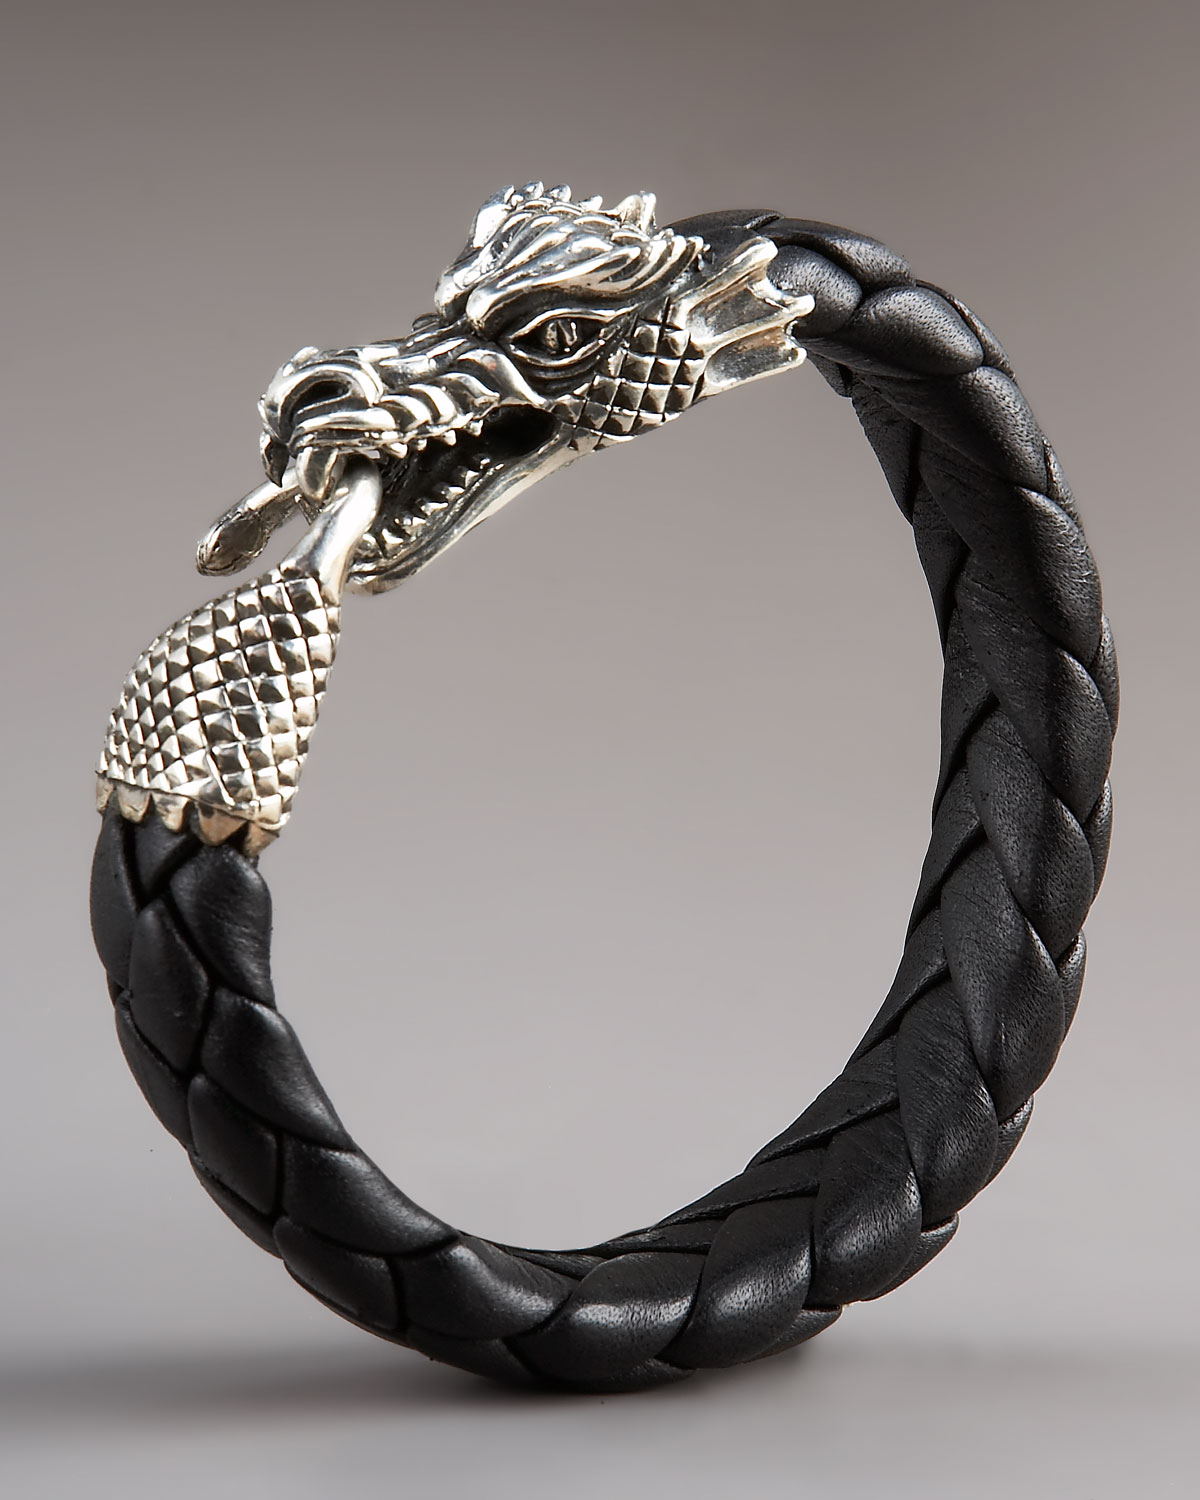 King baby studio leather dragon bracelet in black for men for King baby jewelry sale